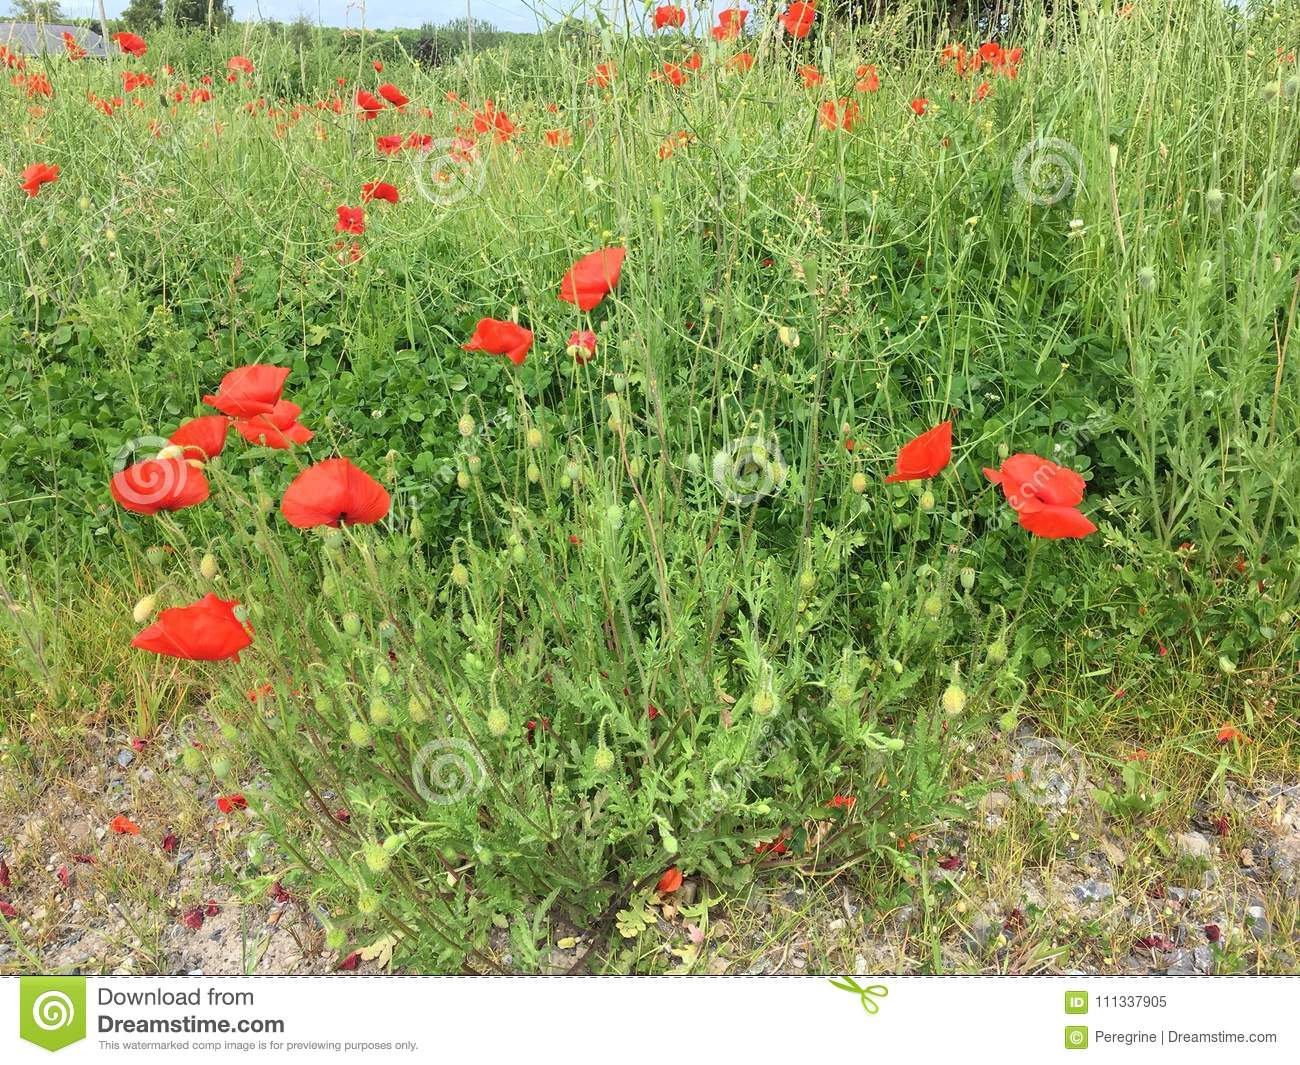 A Poppy Flowers Stock Image Image Of Popp Flower Grass 111337905